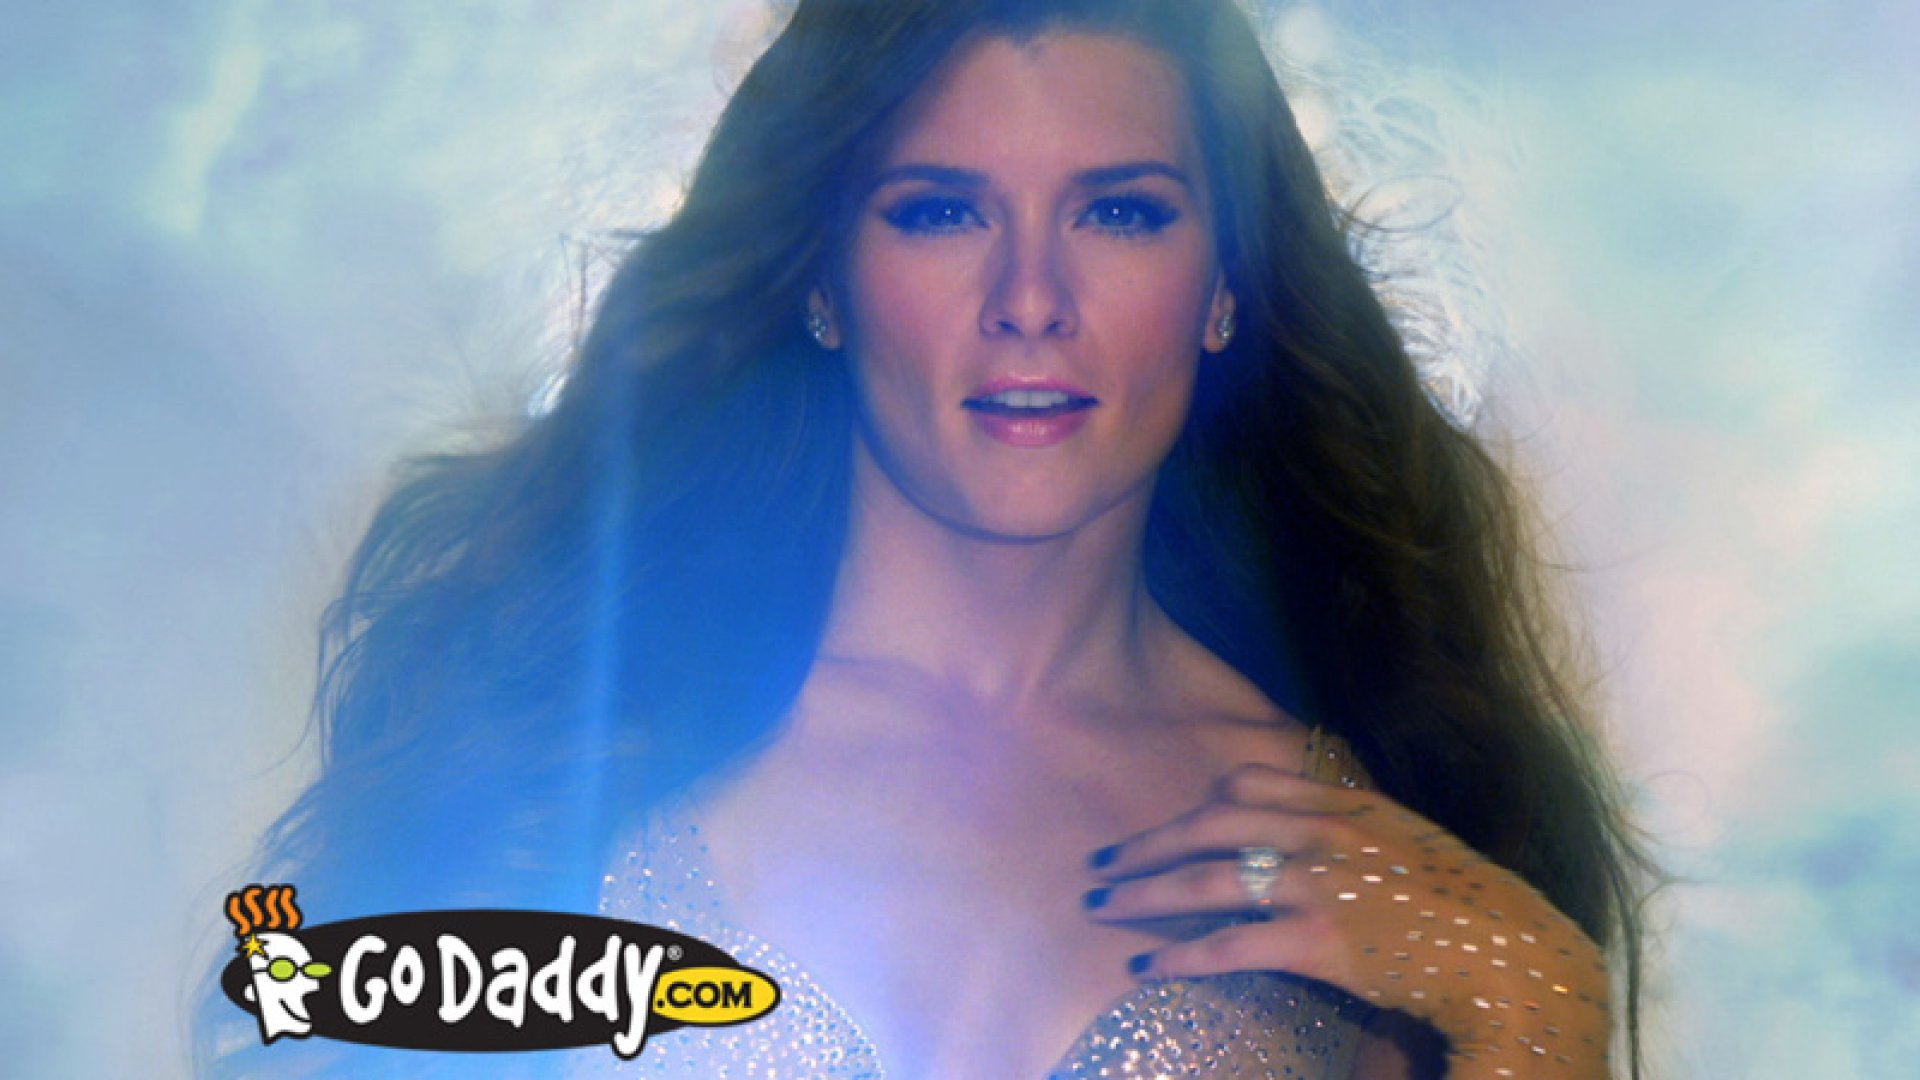 Second Time's a Charm? GoDaddy Strikes While the IPO Iron Is Hot